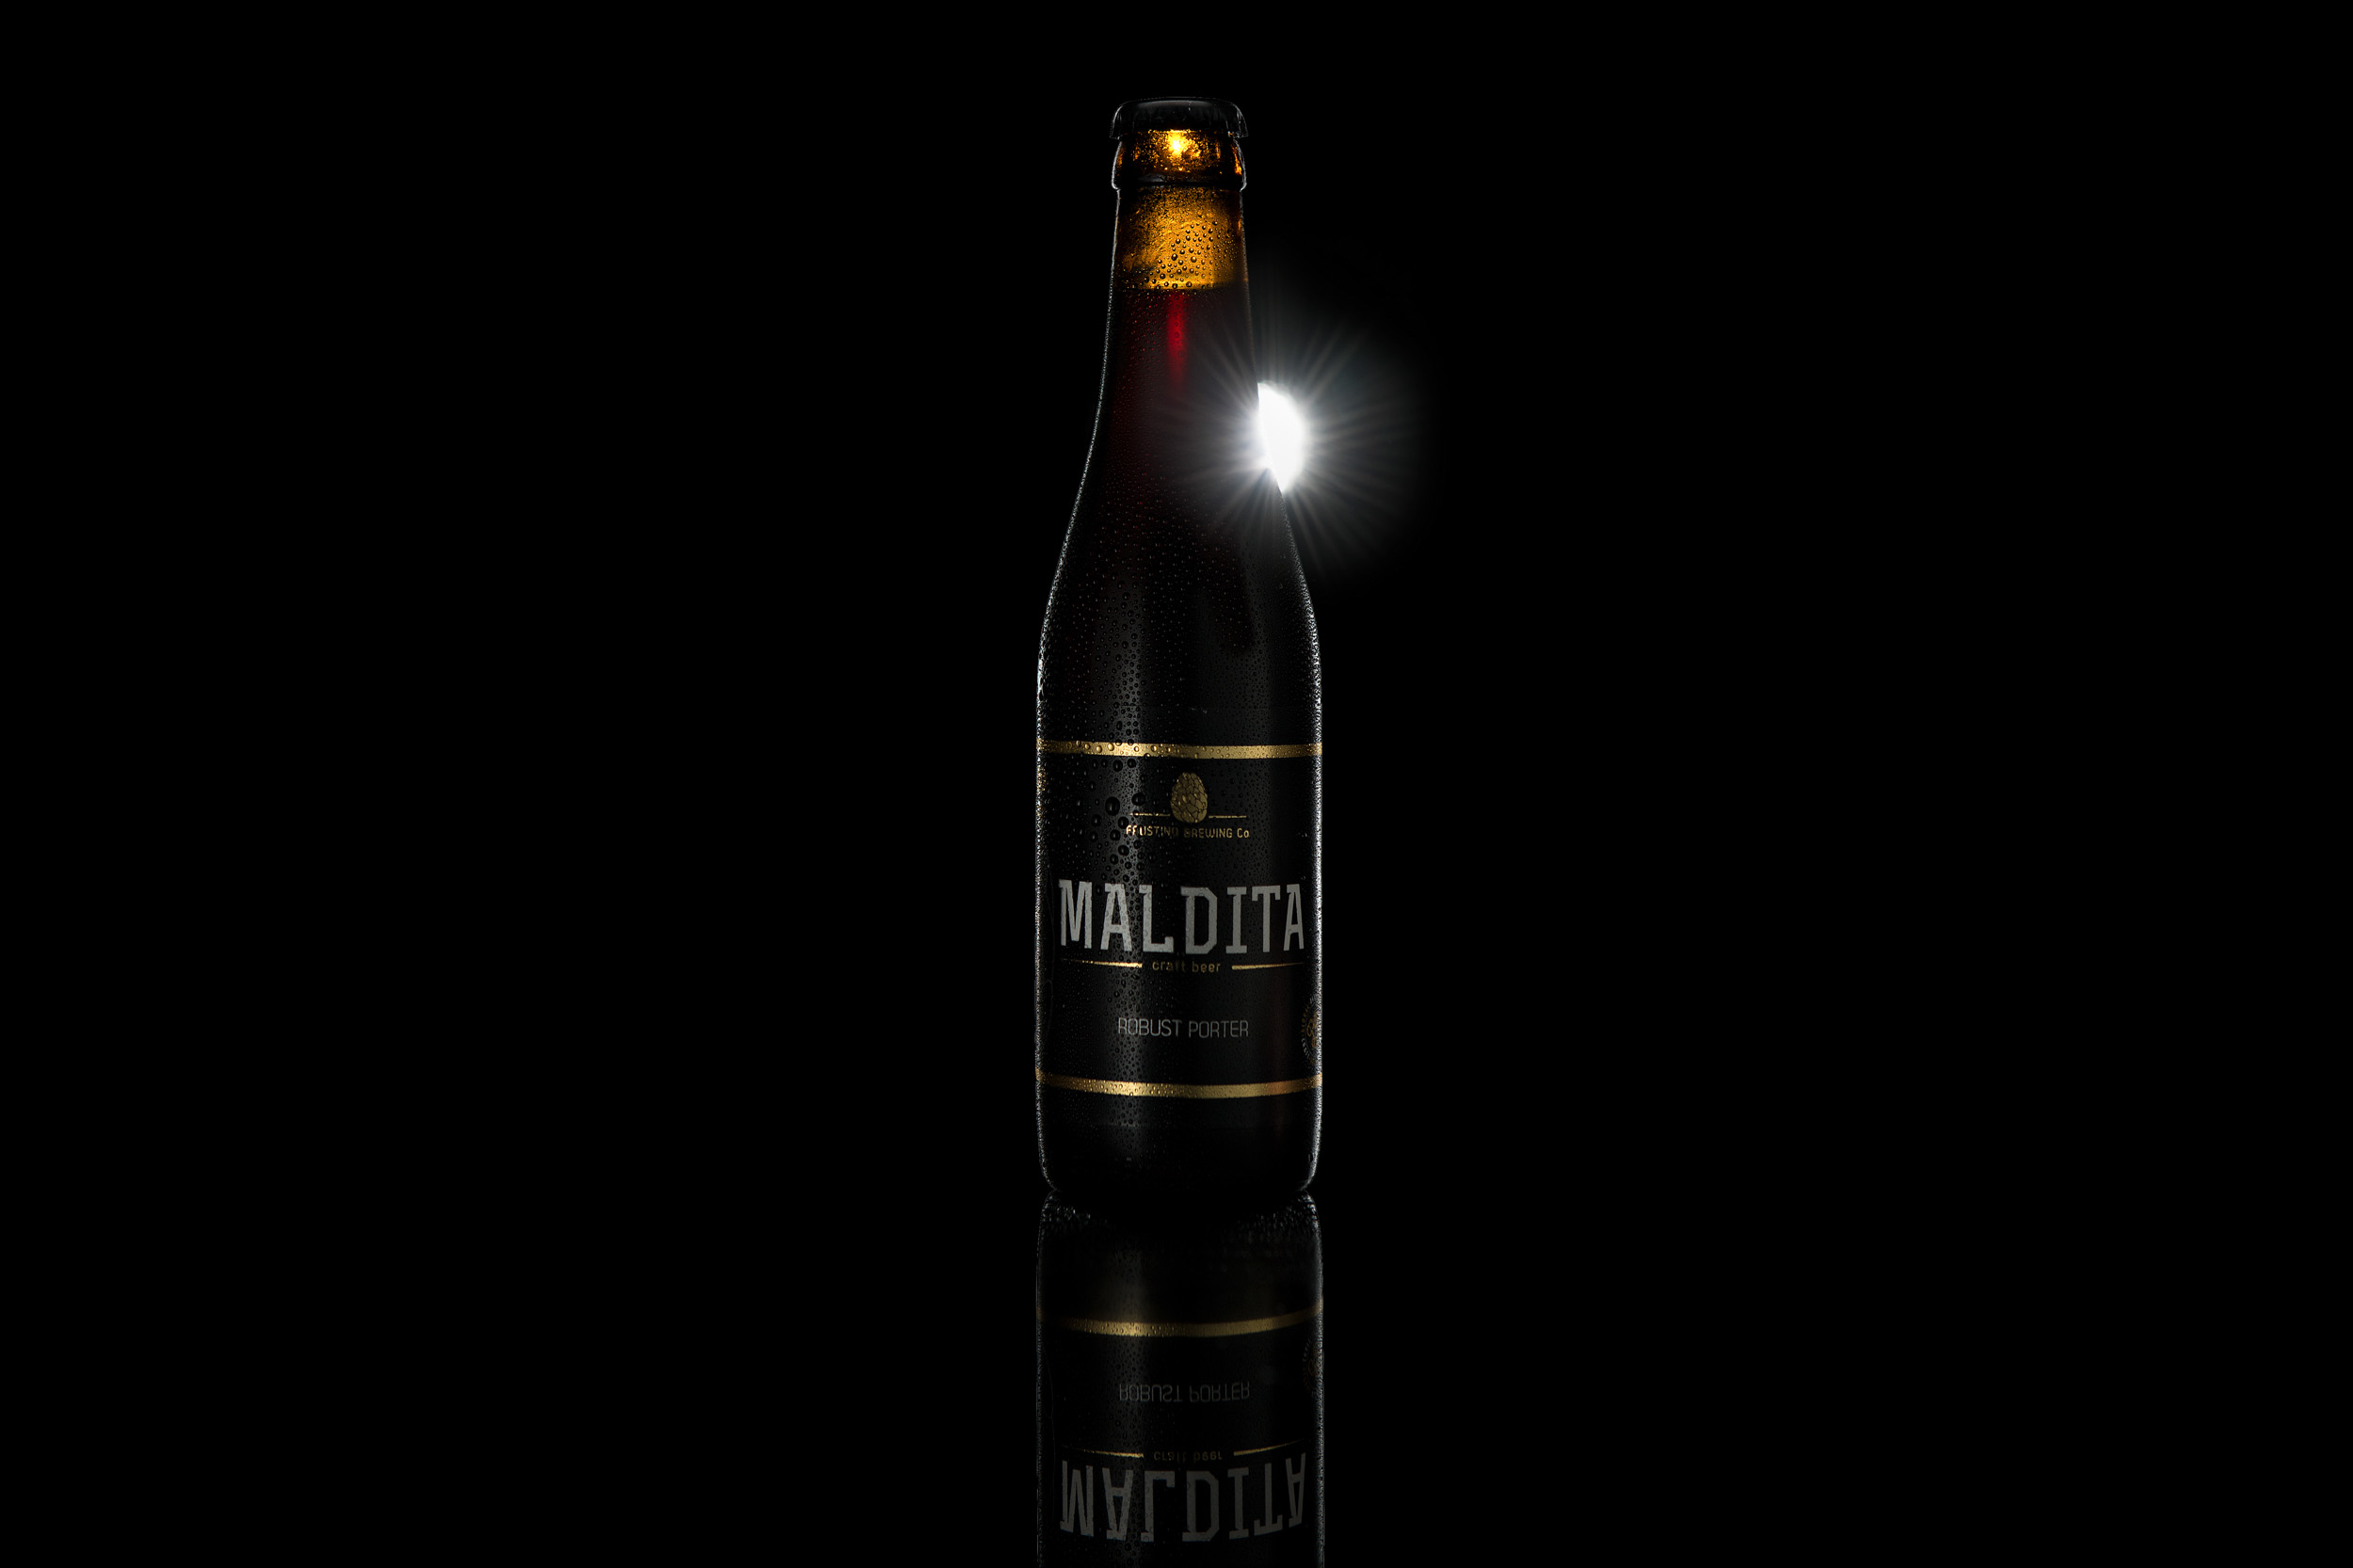 Maldita - Robust Porter by Frustino Brewing